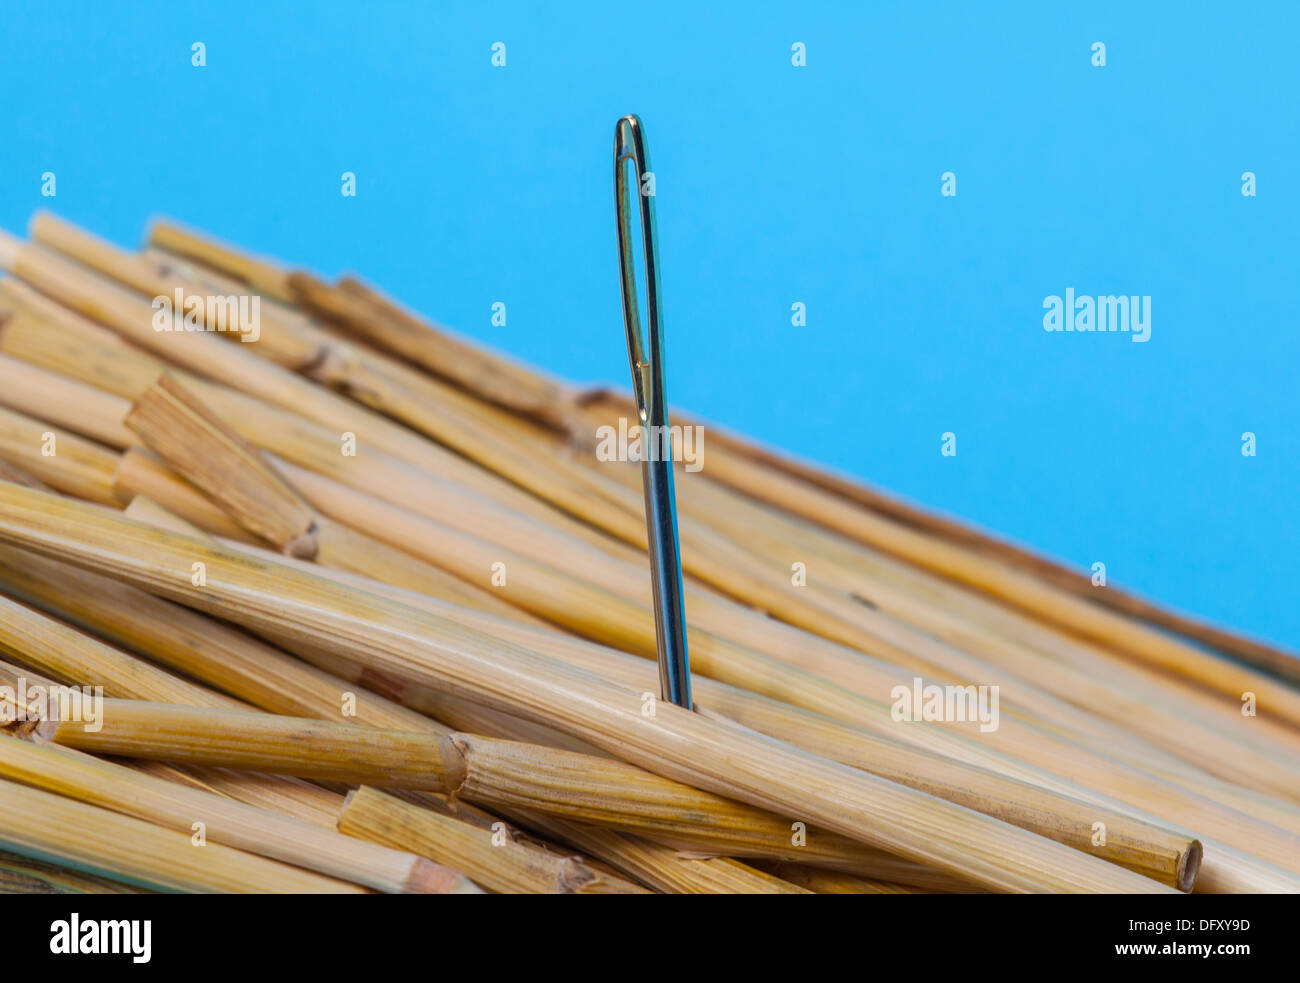 Needle in straw - Stock Image